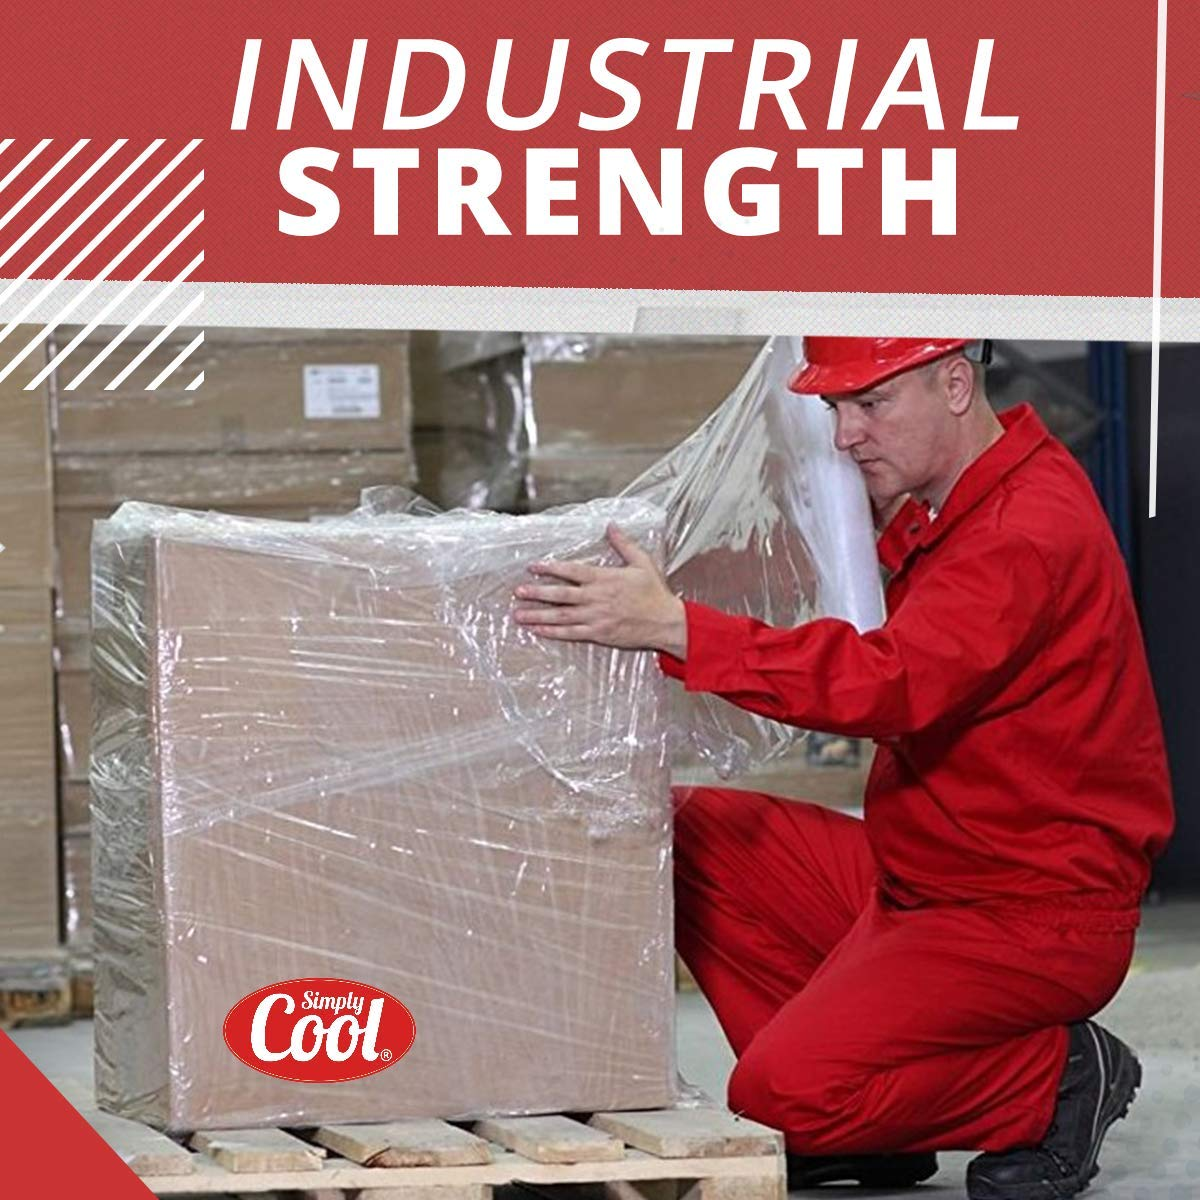 Stretch Wrap with Handle Industrial Strength 4 Pack 15'' x 1000 Ft | 80 Gauge Thick (20 Micron) Clear Cling Plastic Pallet Supplies | Self - Adhering ● Packing ● Moving ● Heavy Duty Shrink Film Rolls by Simply Cool